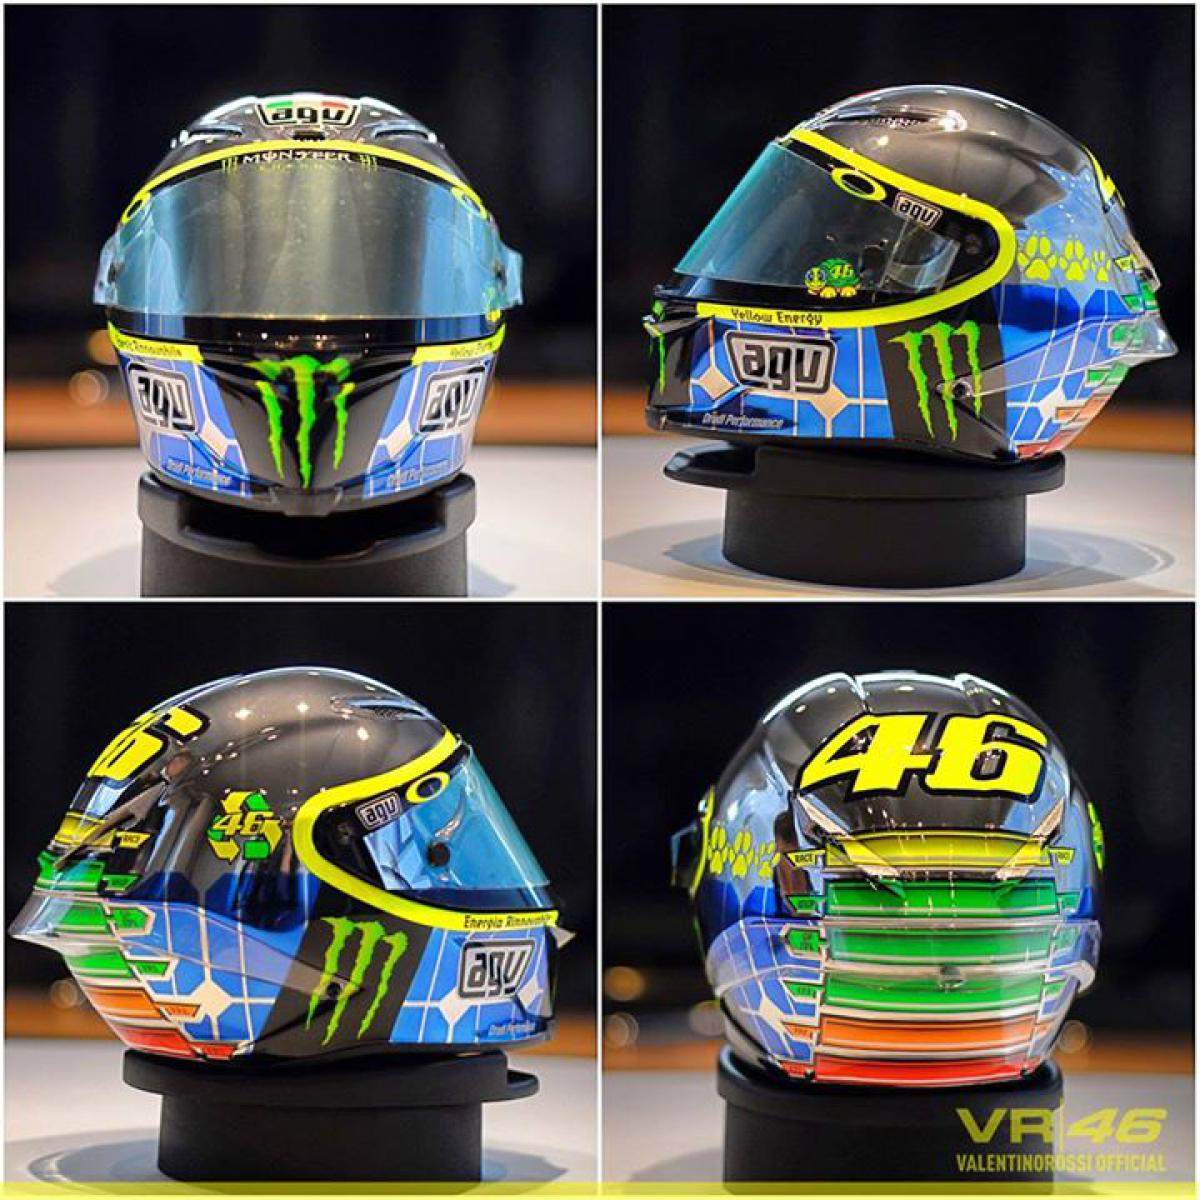 valentino rossi mugello 2015 helmet. Black Bedroom Furniture Sets. Home Design Ideas